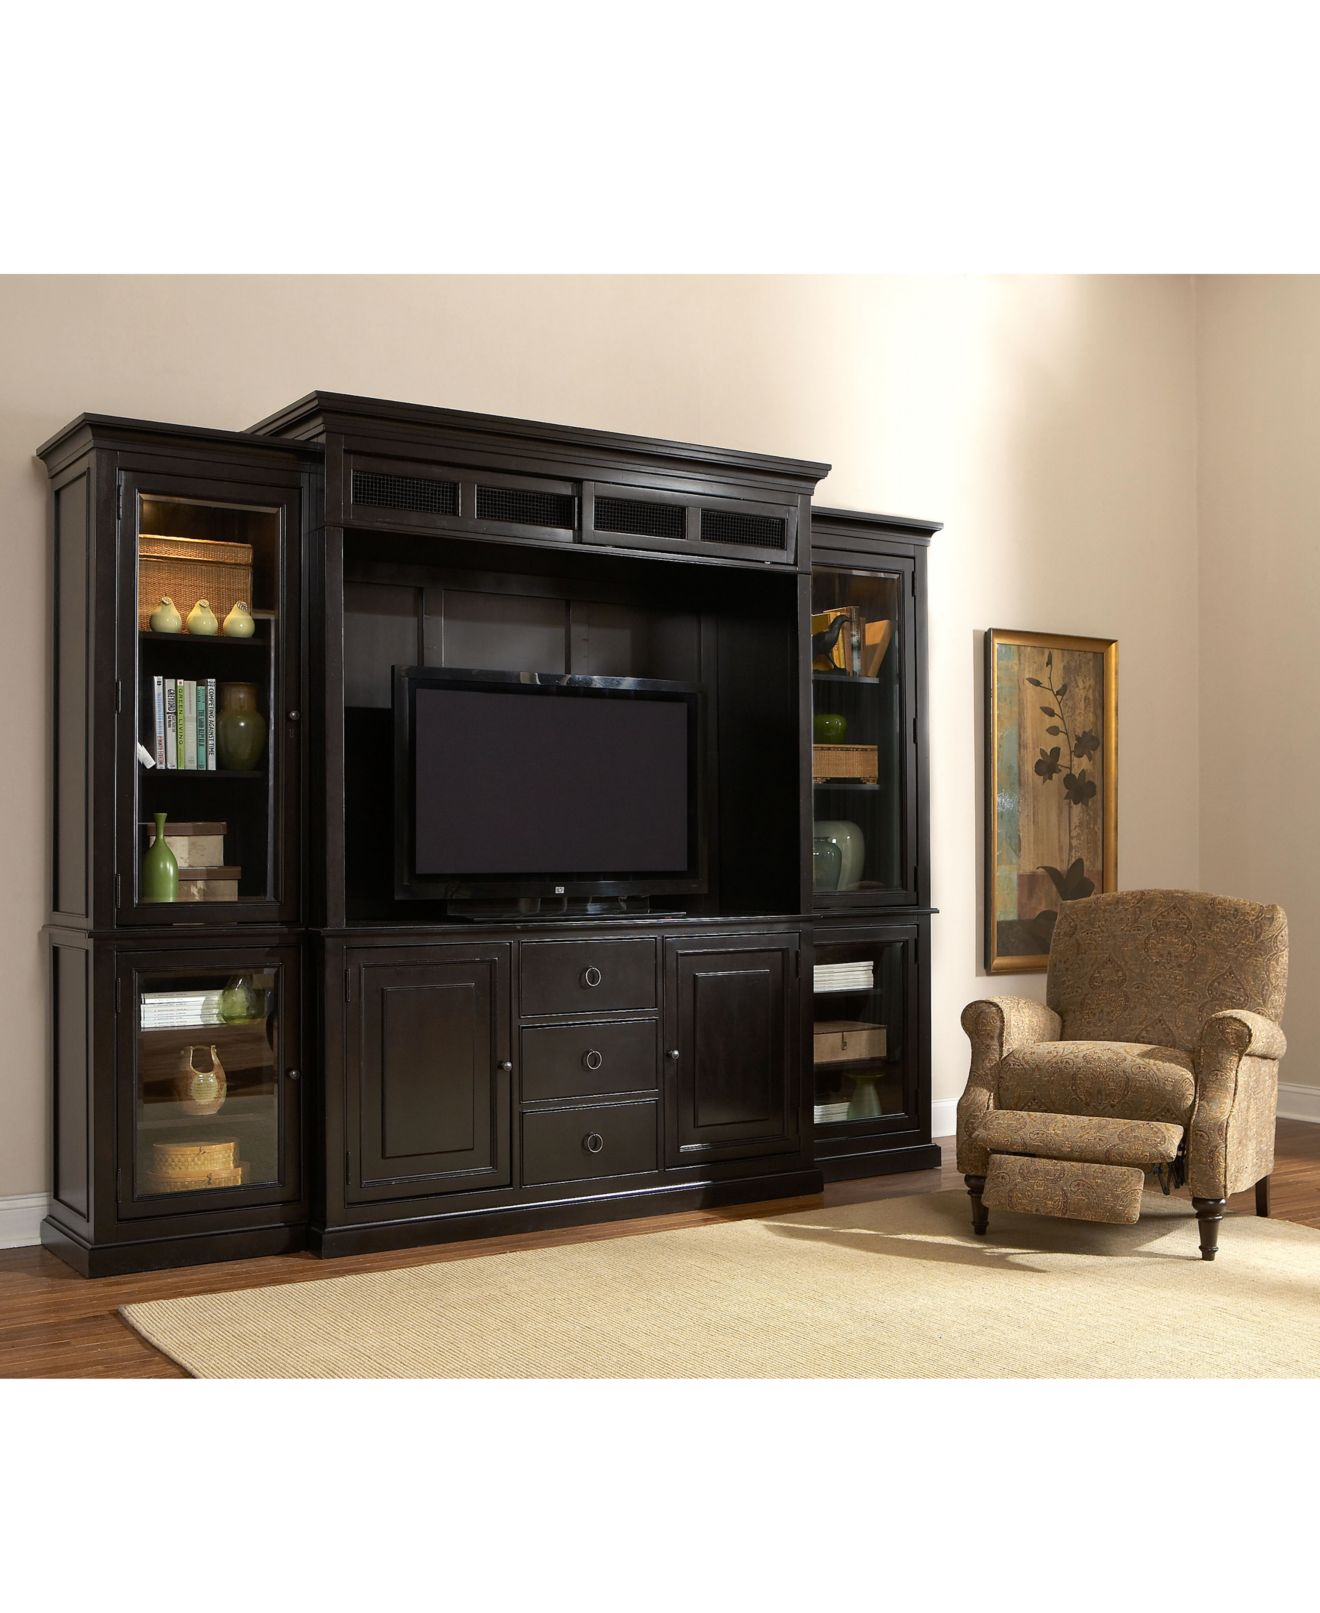 Traditional Living Room Furniture Sets Macy s